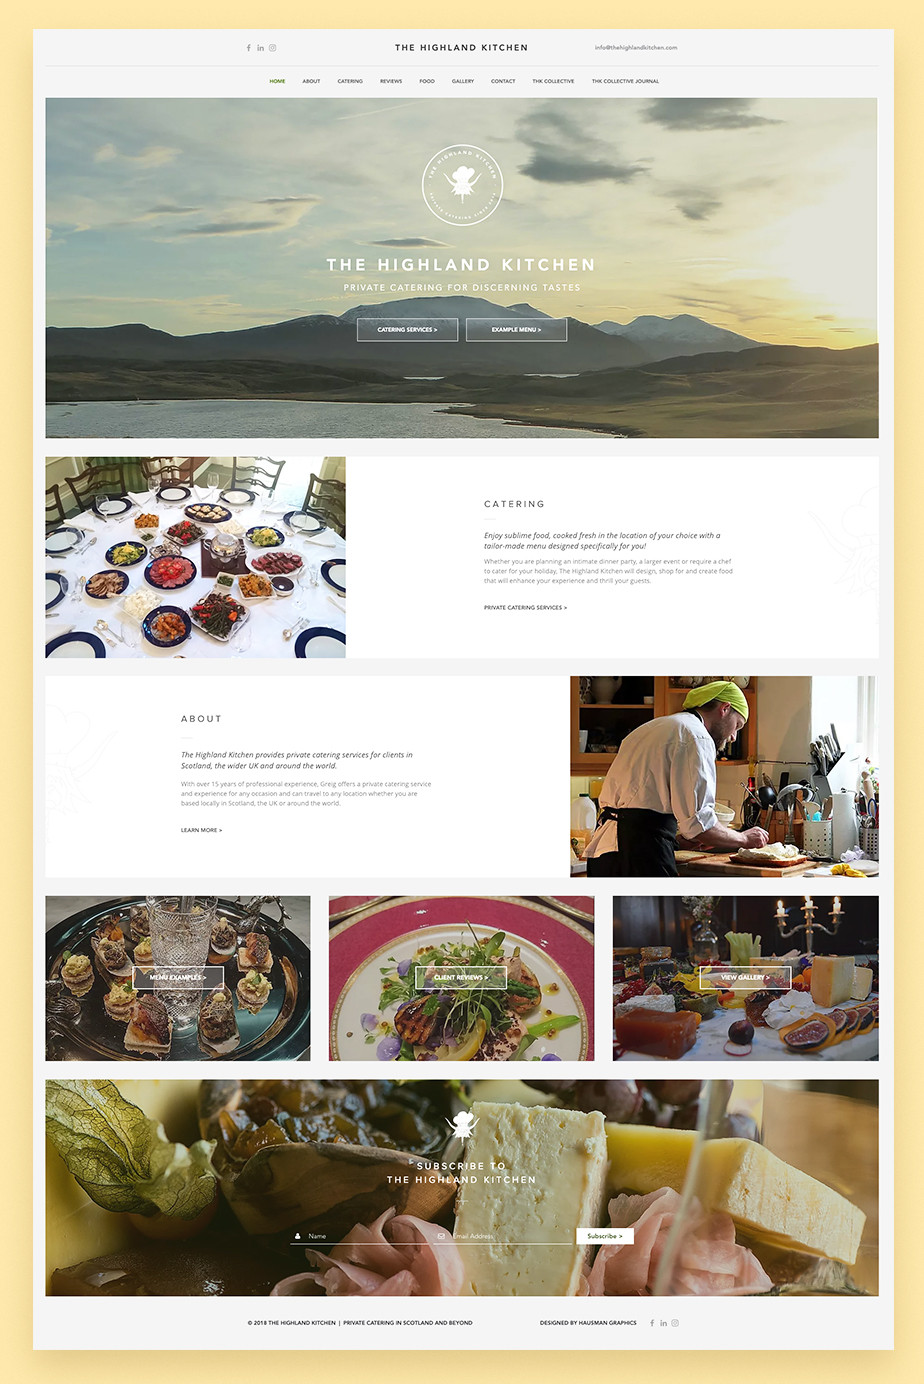 The Highland Kitchen restaurant website